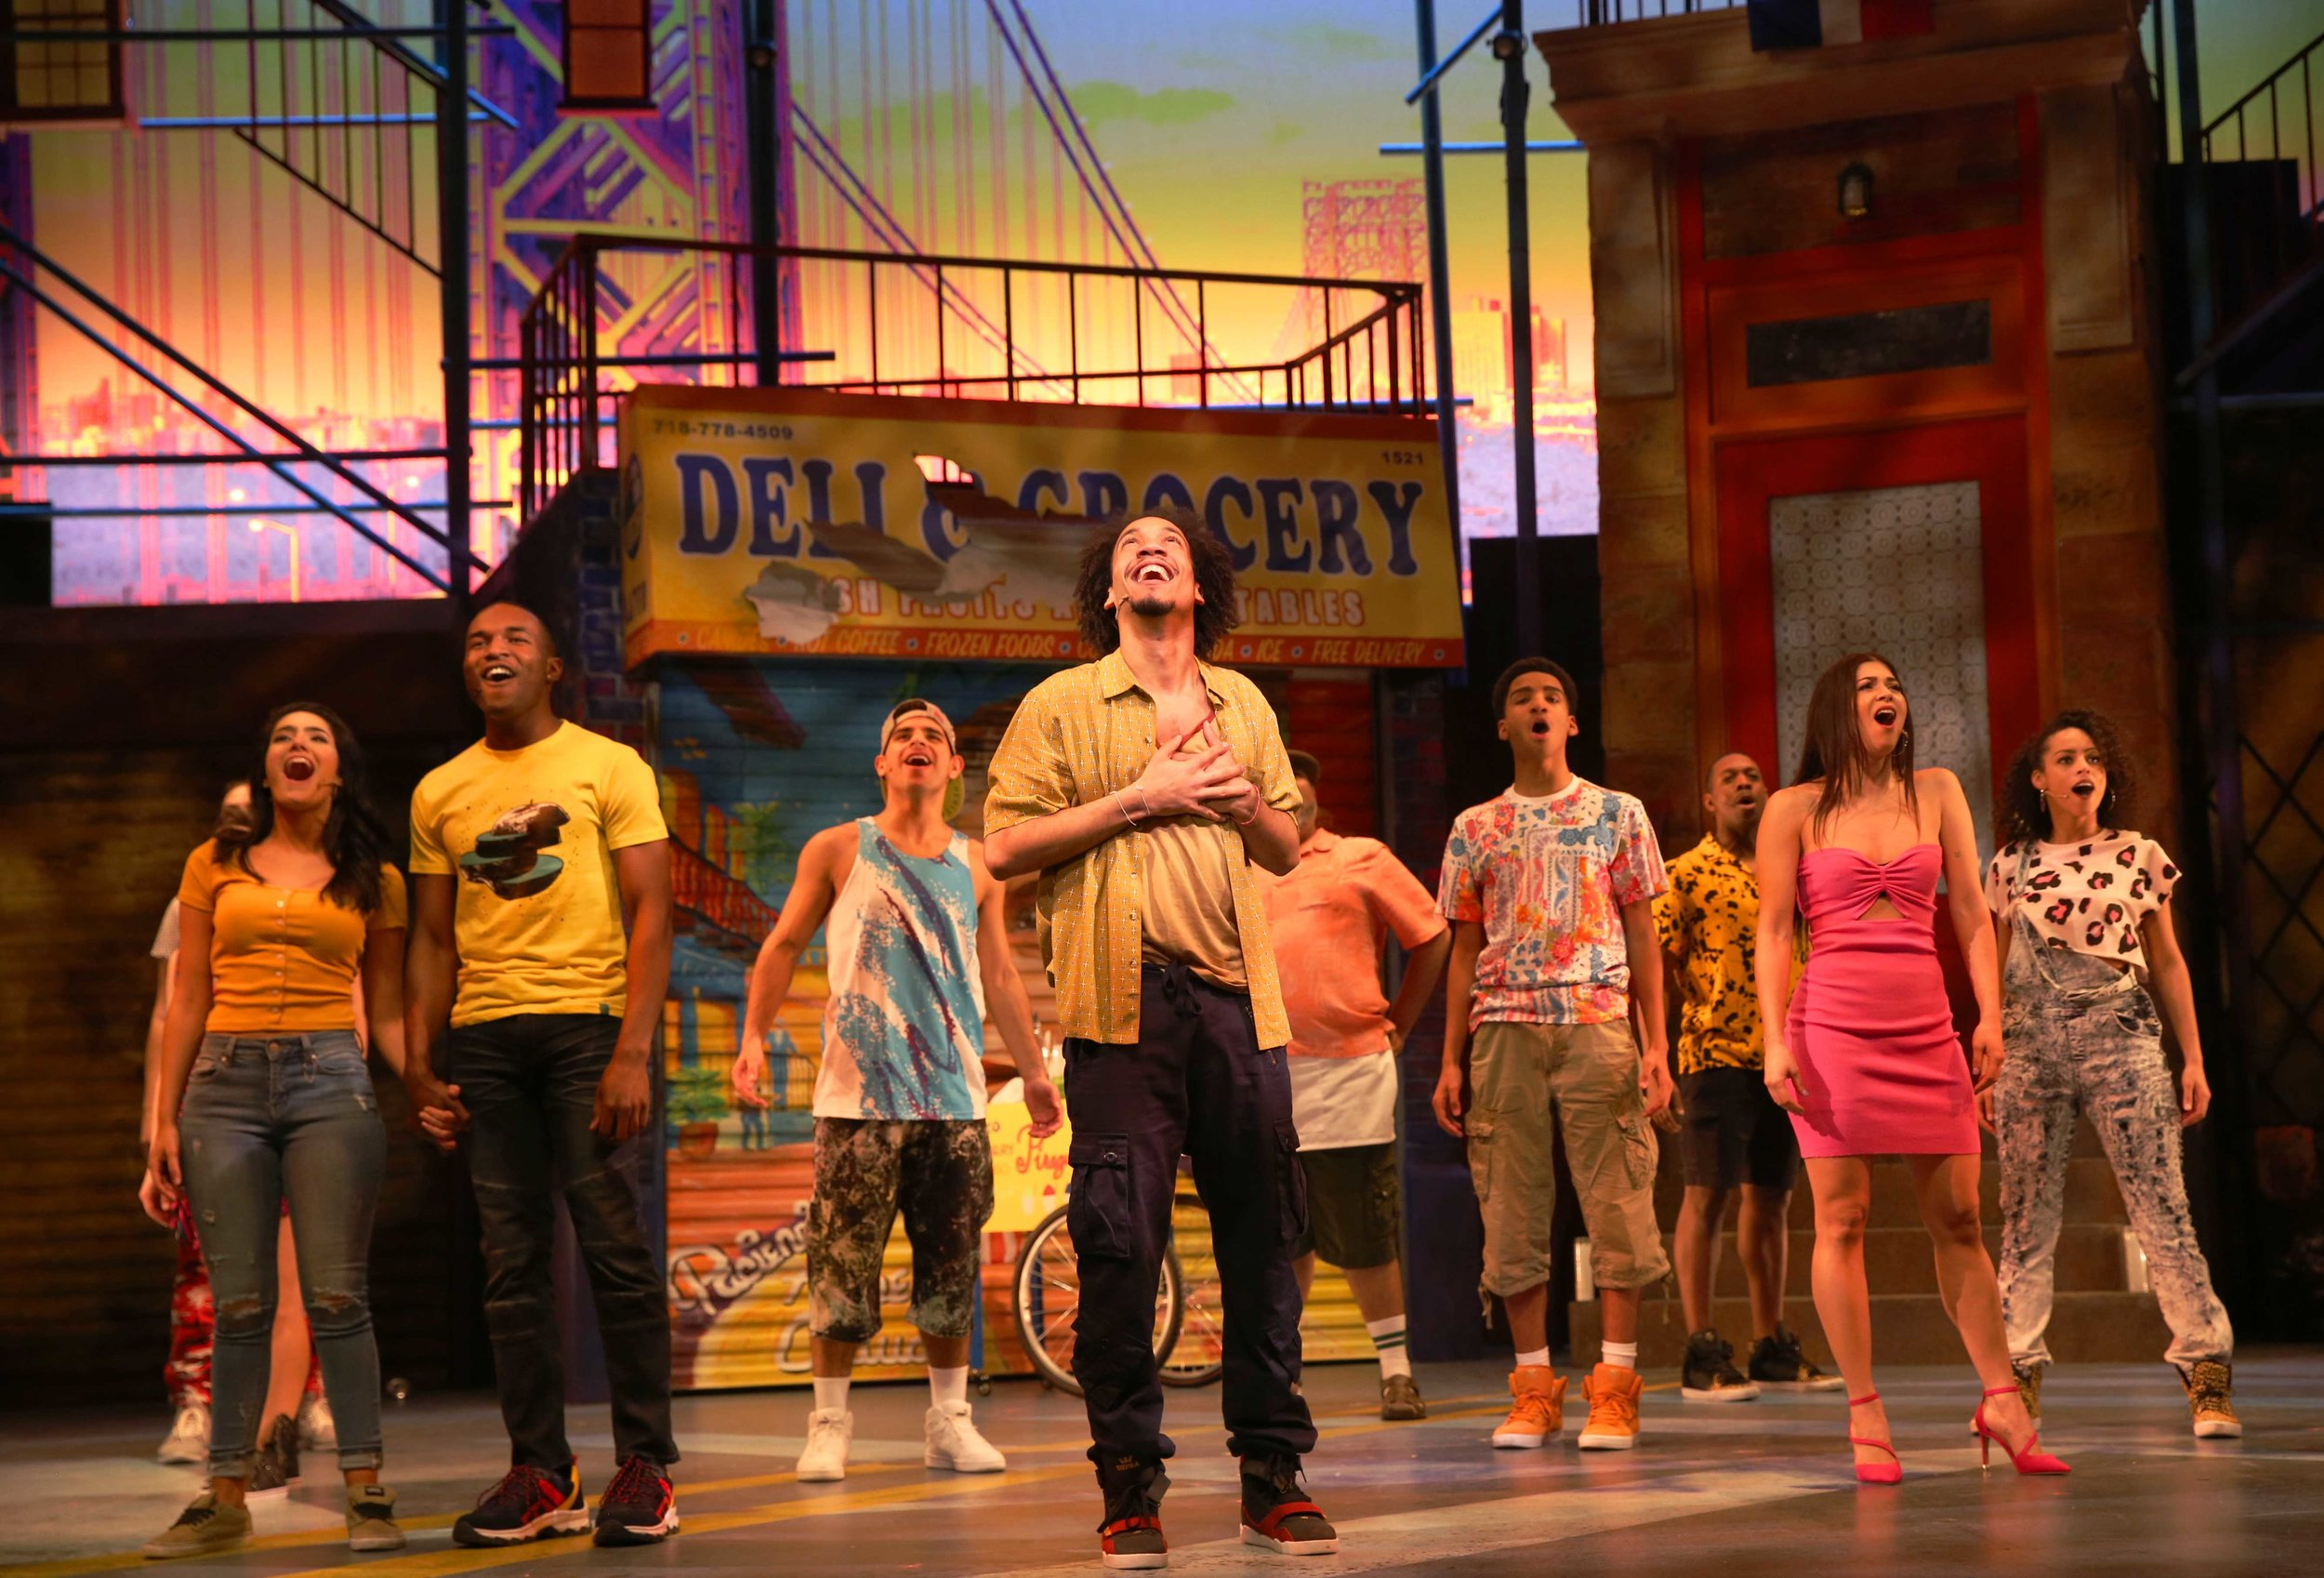 Nina (Didi Romero), Benny (Gerald Caesar), Graffitti Pete (Edward Cuellar), Usnavi (Rodolfo Soto), Piragua Guy (Paul Aguirre), Sonny (Ezequiel Pujols), Ensemble (Randy Castillo), Vanessa (Nina Victoria Negron), and Ensemble (Sarita Colon) in Westport Country Playhouse's production of In the Heights (photo by Carol Rosegg)